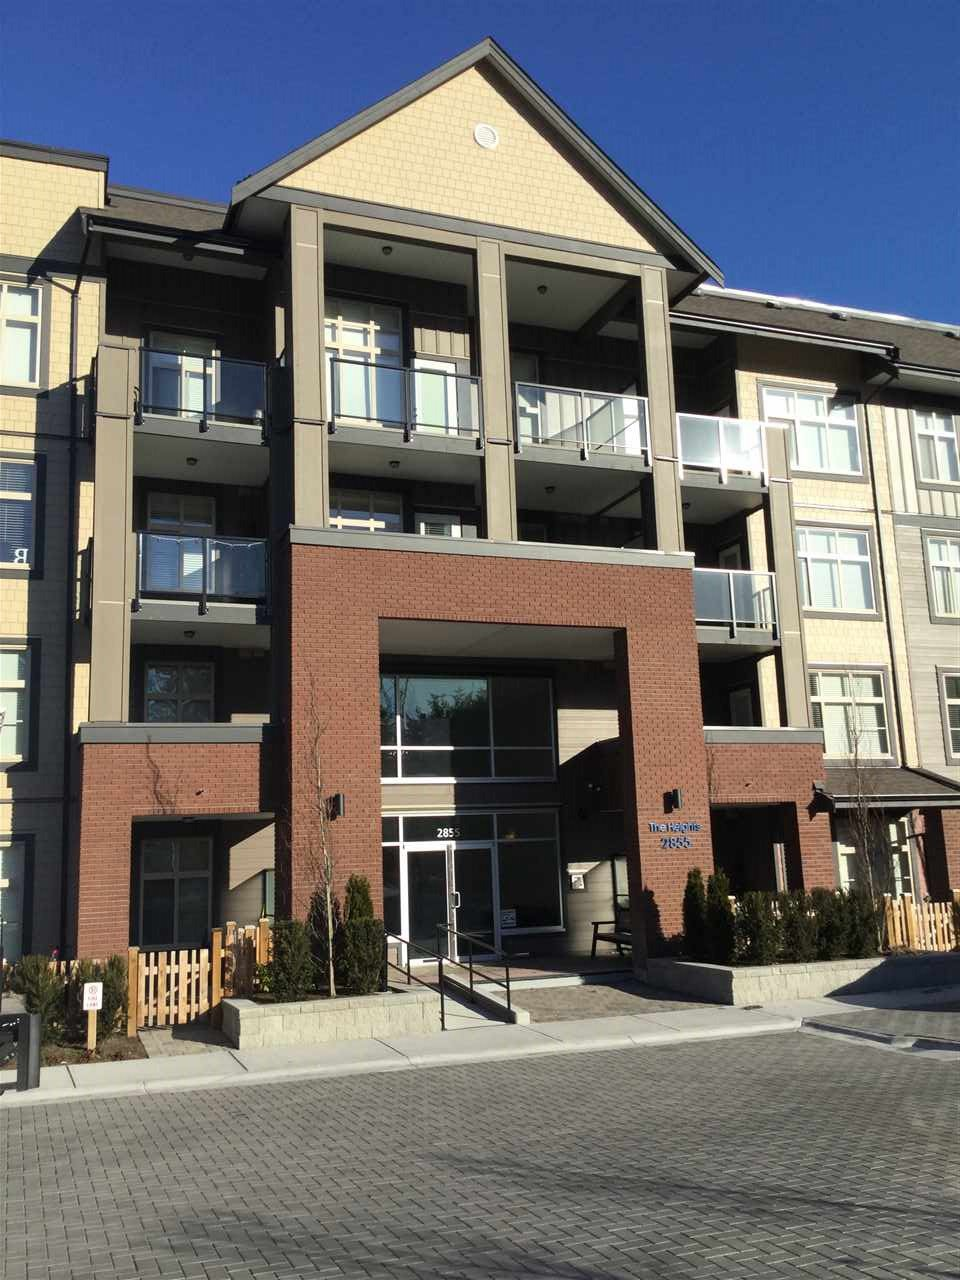 """Main Photo: 313 2855 156 Street in Surrey: Grandview Surrey Condo for sale in """"The Heights Condos by Lakewood"""" (South Surrey White Rock)  : MLS®# R2135730"""